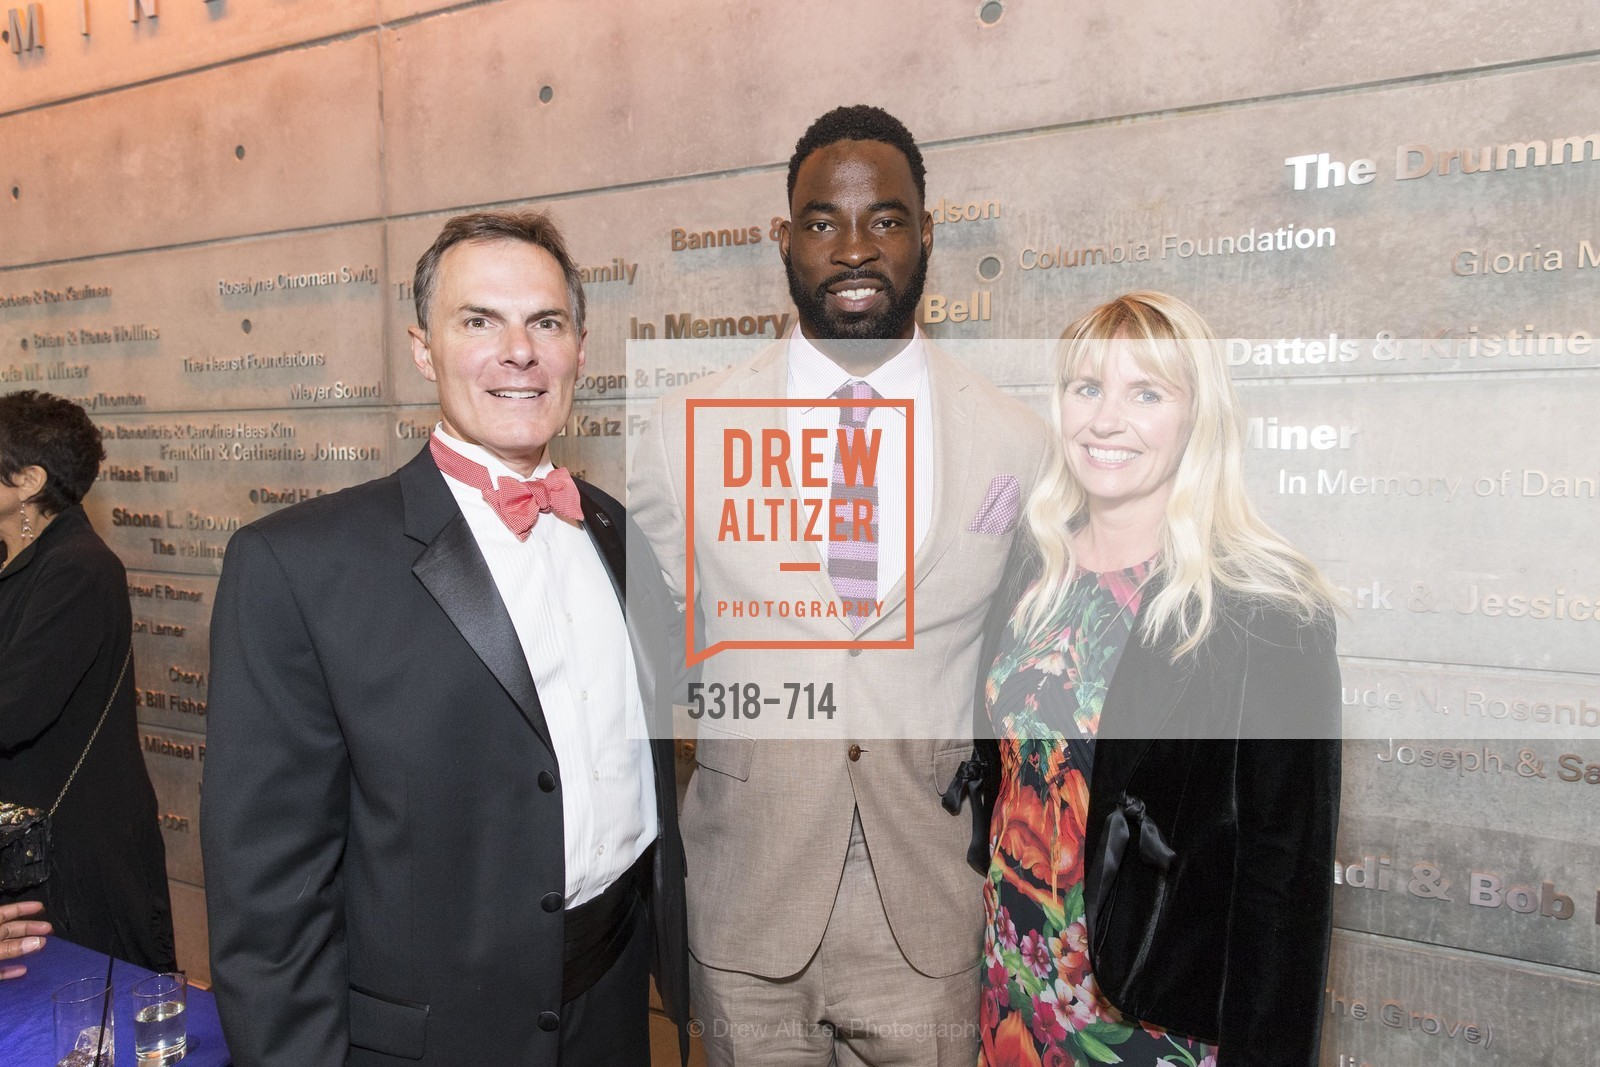 Mark Cavagnero, Justin Tuck, Ive Haugeland, SFJAZZ Gala 2015 Honors Joni Mitchell with Lifetime Achievement Award, US, May 9th, 2015,Drew Altizer, Drew Altizer Photography, full-service agency, private events, San Francisco photographer, photographer california